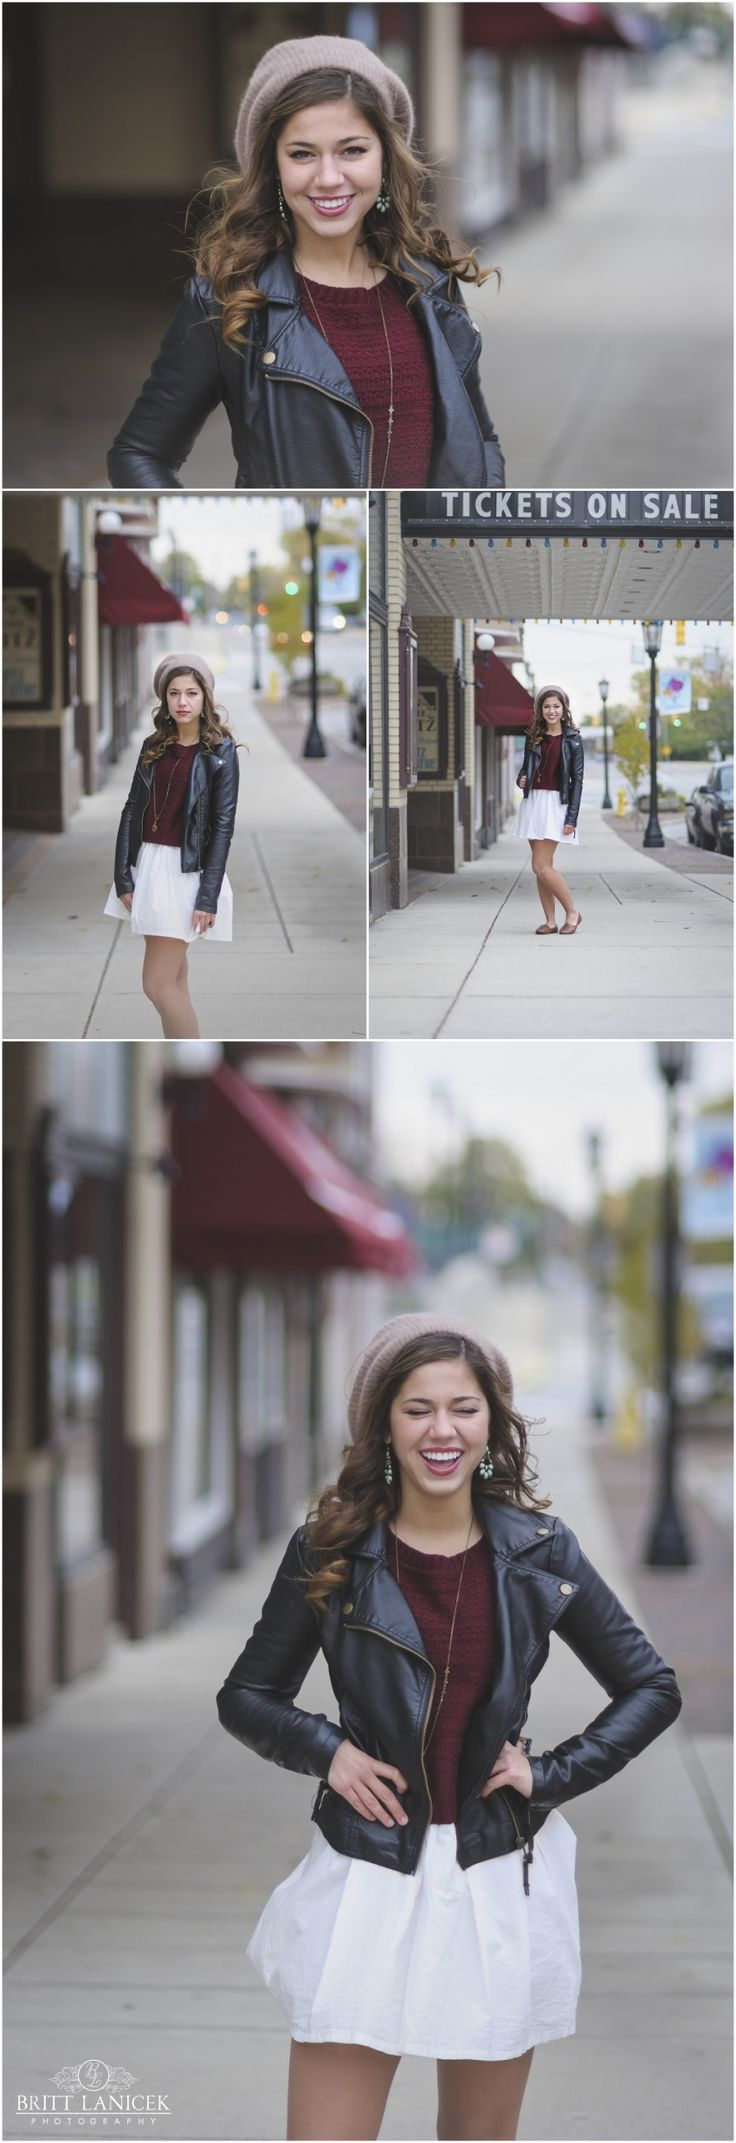 Modern Senior Pictures | Downtown Senior Portraits | Custom Senior Pictures by Britt Lanicek Photography in Tiffin, Ohio. http://www.brittlanicekphotography.com